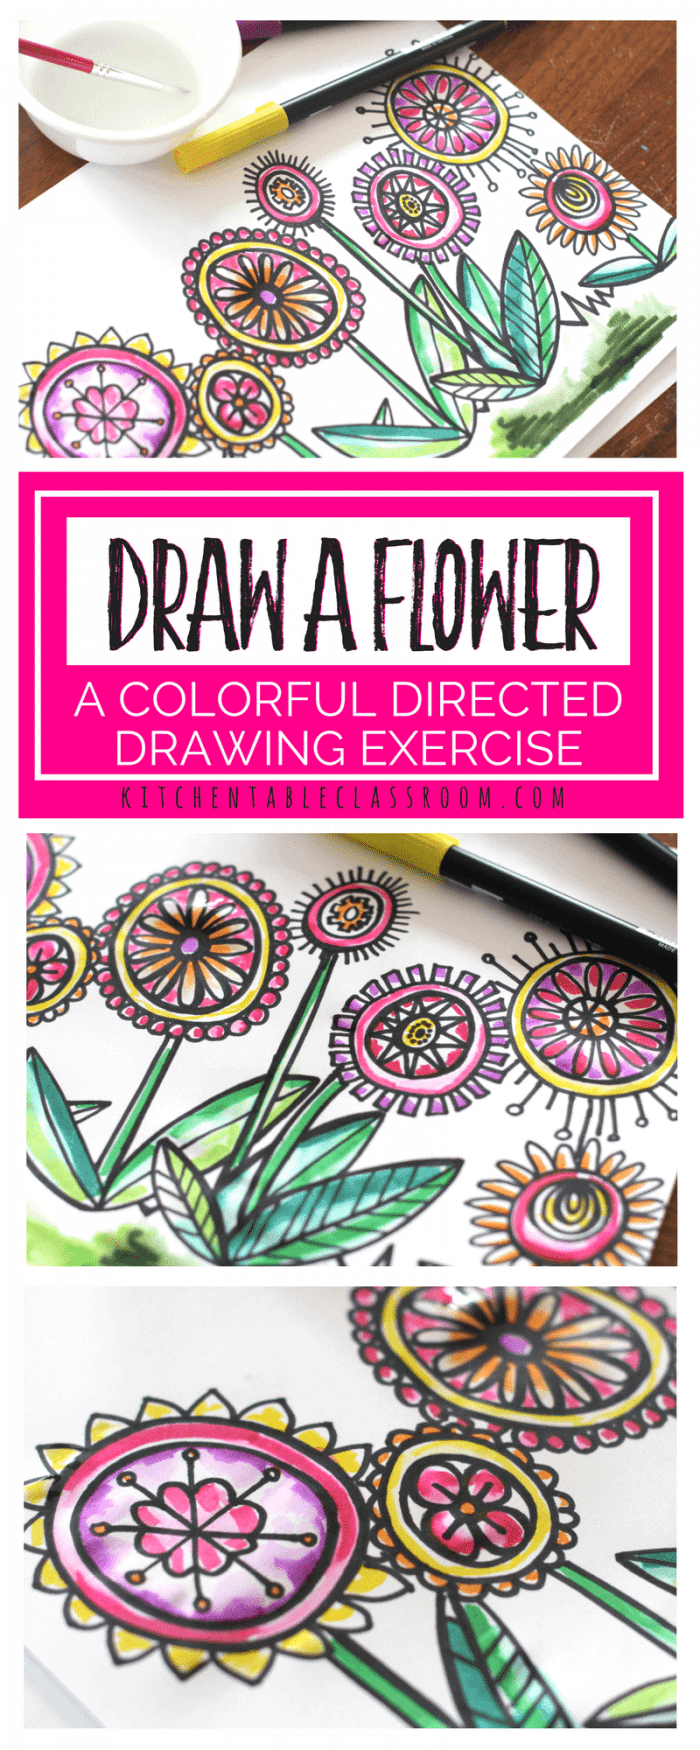 Flower-doodle-draw-a-flower-directed-drawing-lesson-pinterest-tiny-700x1750